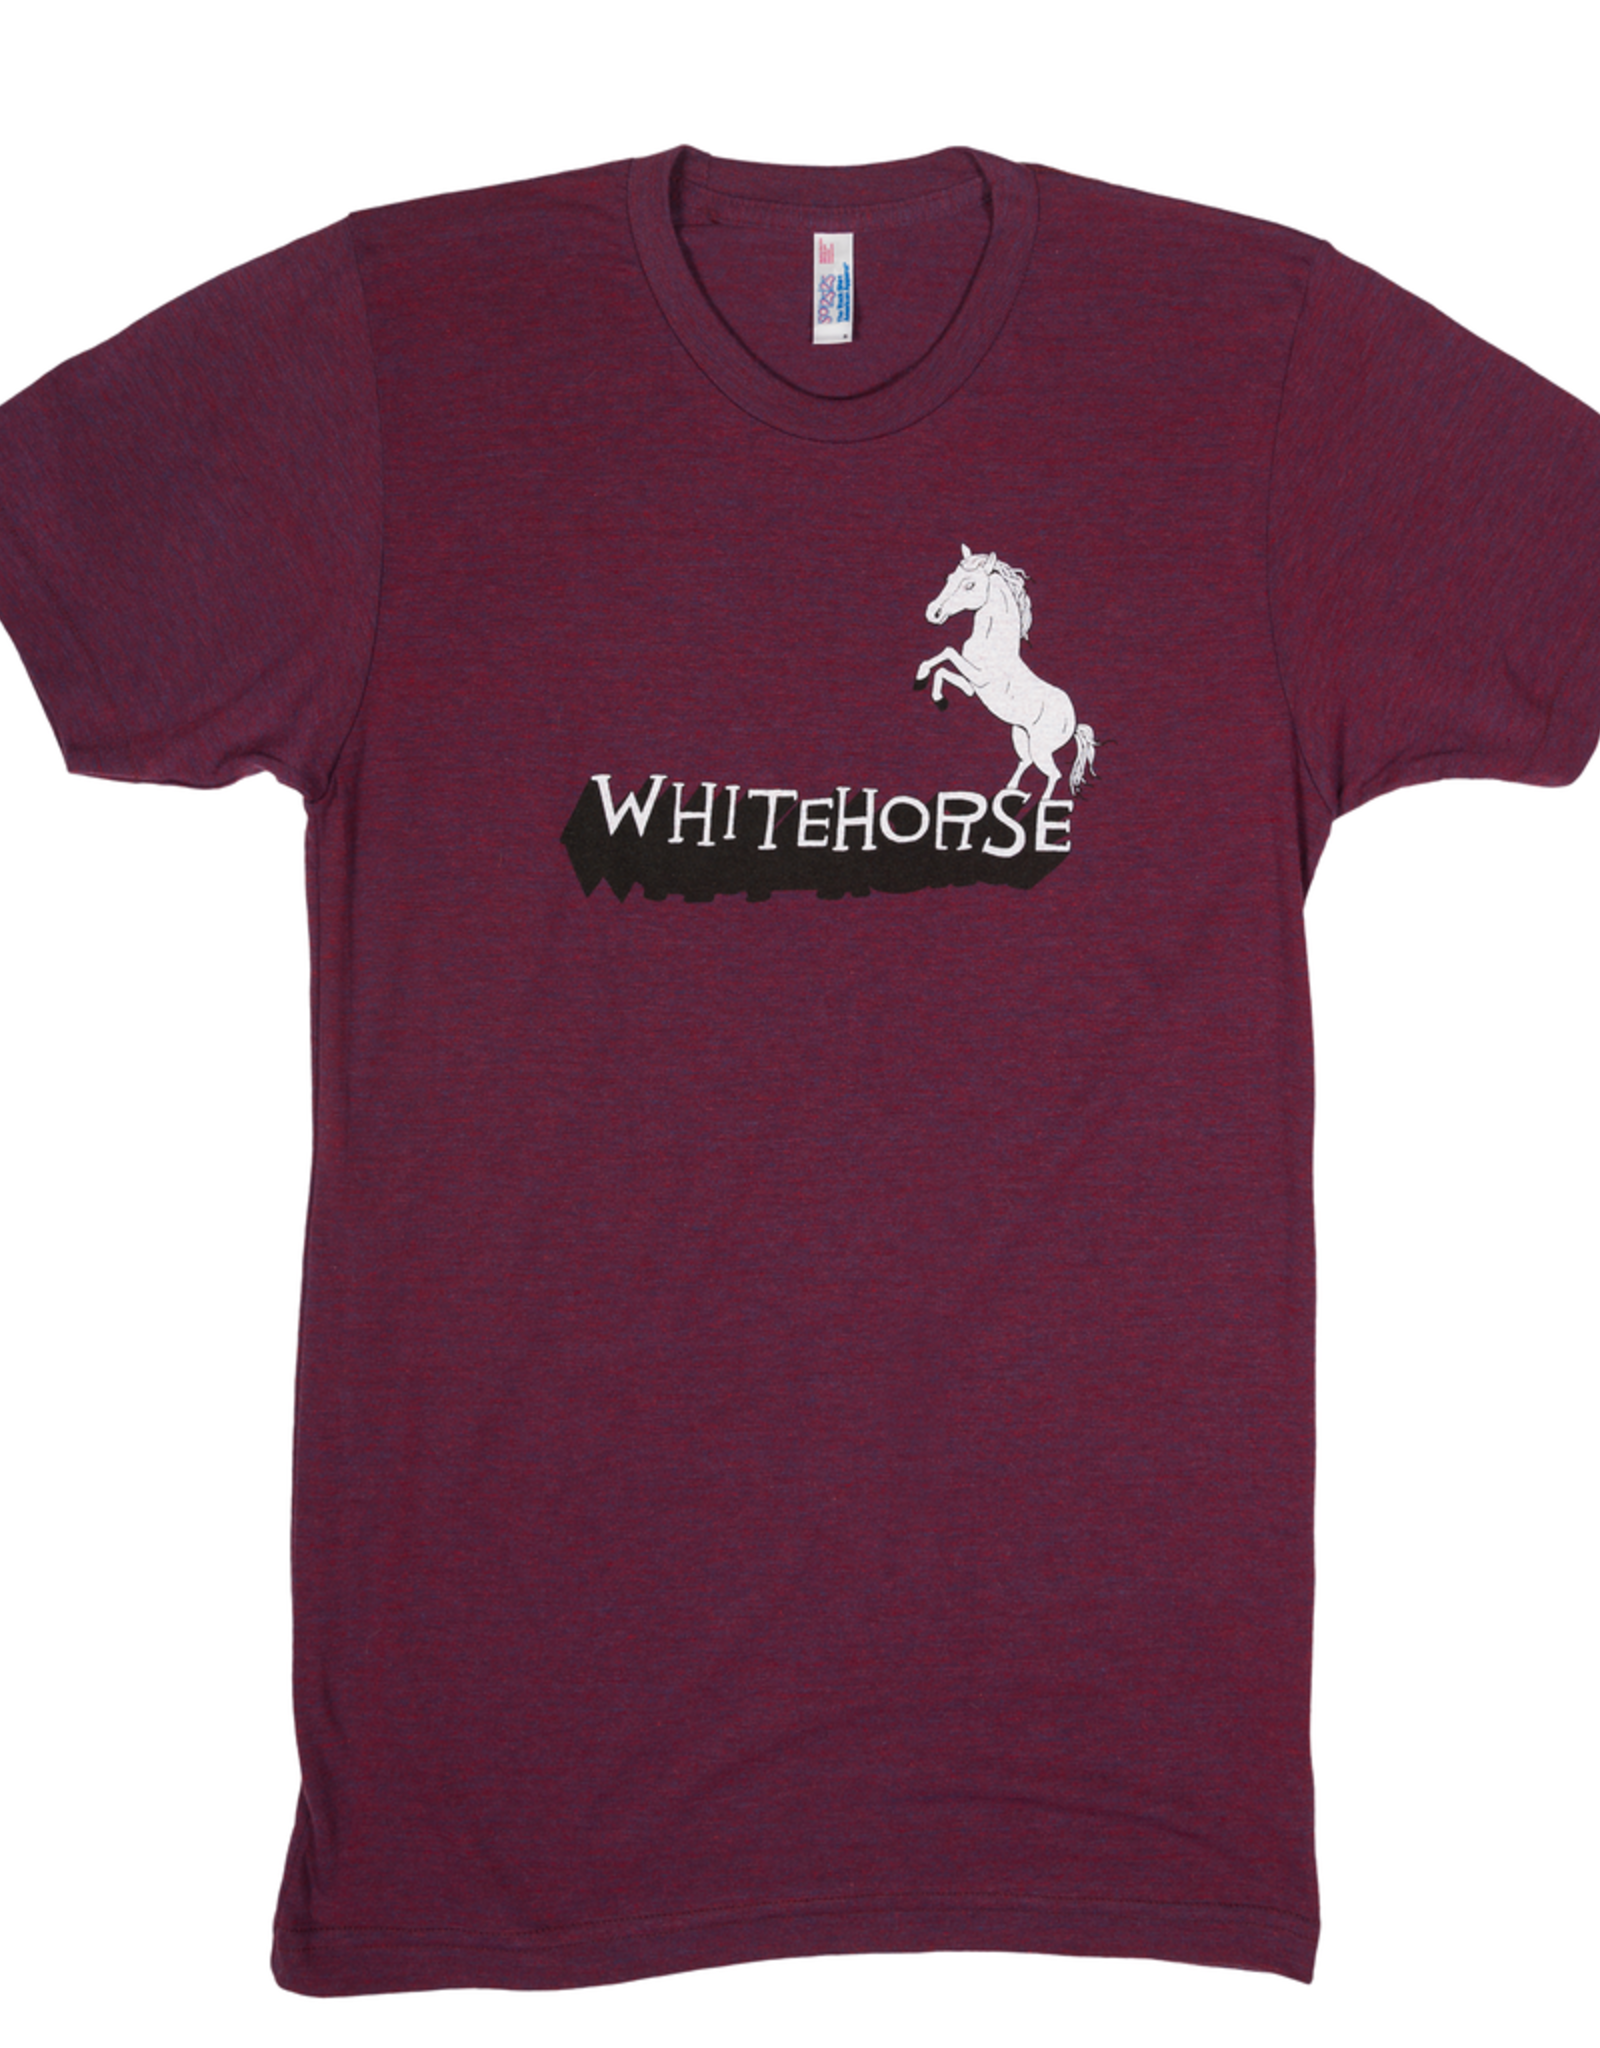 The Collective Good TCG Men's Whitehorse Tshirt